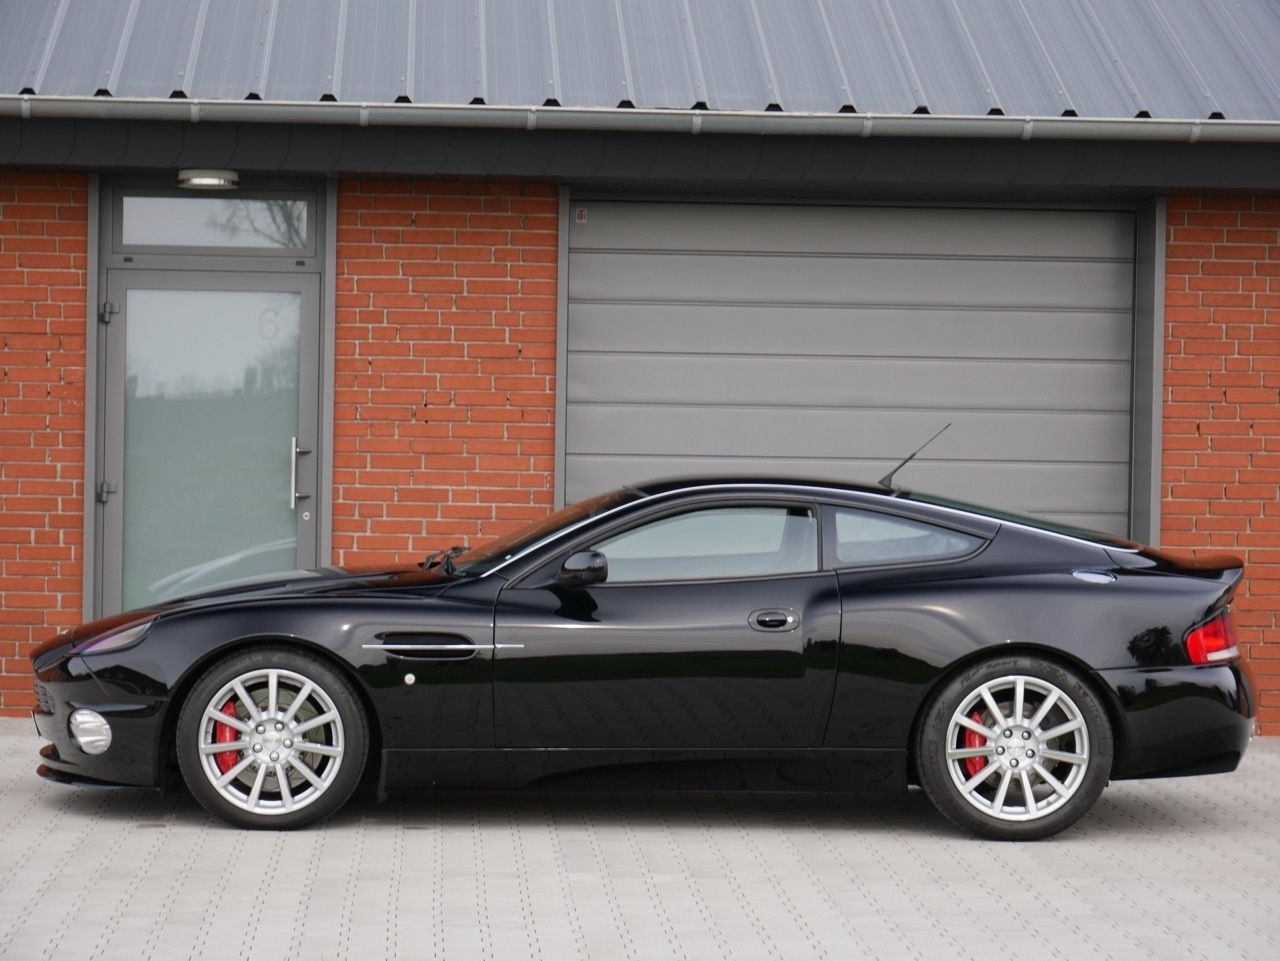 2007 Aston Martin Vanquish S Ultimate Edition One Of Only 30 Lhd Made Classic Driver Market Aston Martin For Sale Aston Martin Aston Martin Vanquish